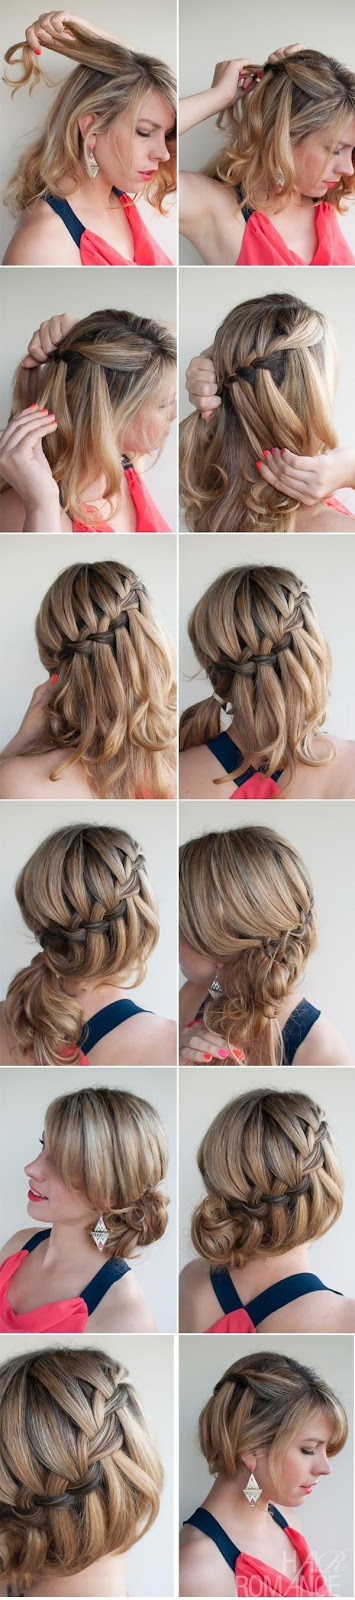 Miraculous 11 Interesting And Useful Hair Tutorials For Every Day Short Hairstyles Gunalazisus